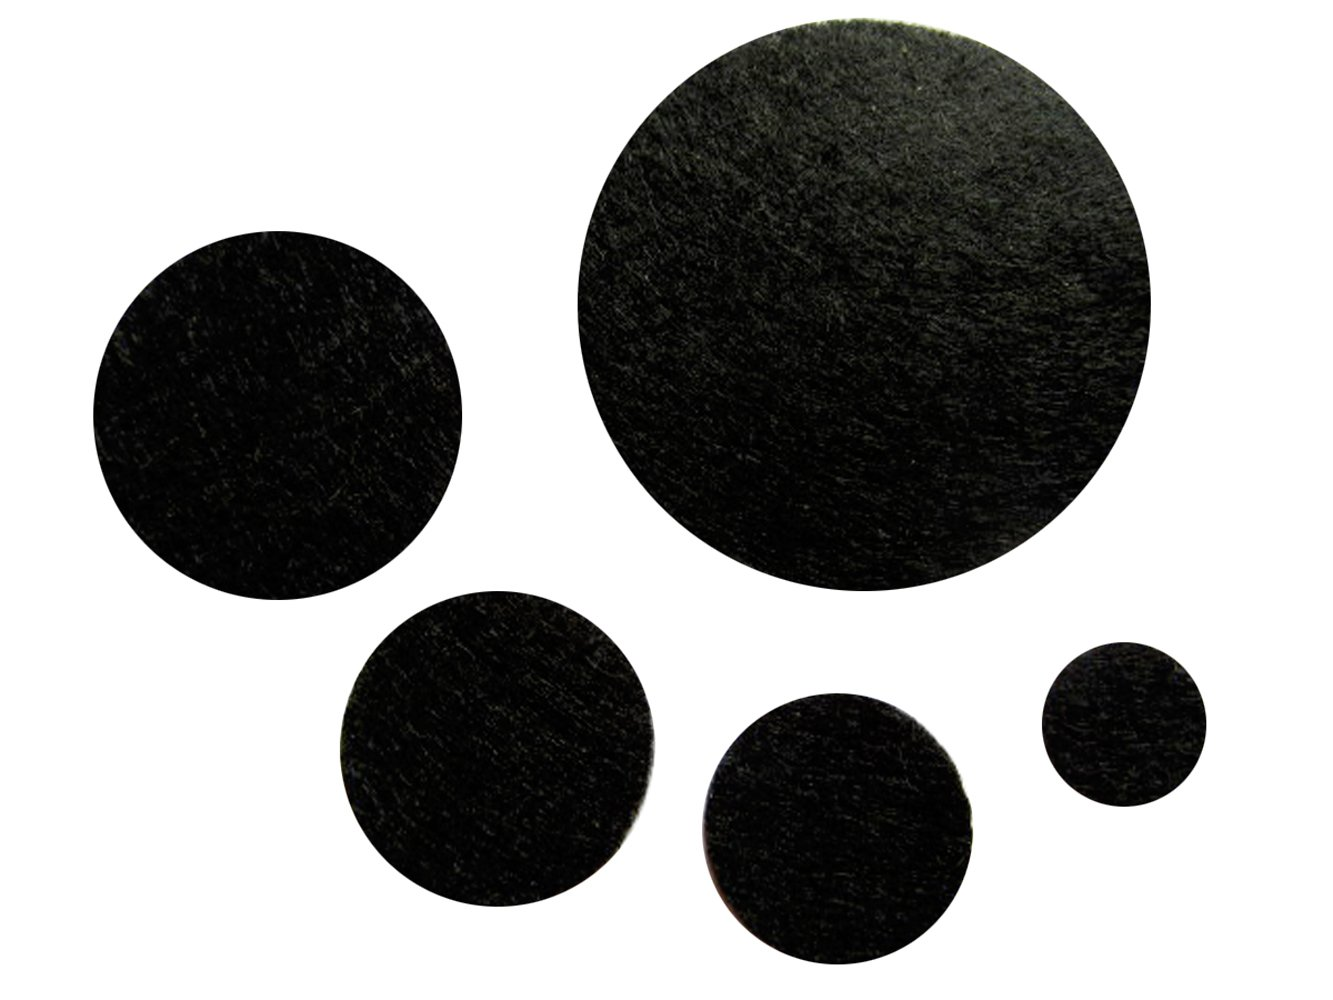 YYCRAFT 200 Pcs Adhesive Felt Circles for DIY and Sewing Handcraft Various Package Sizes Wholesale , White Die Cut DIY Projects 1//2 10mm